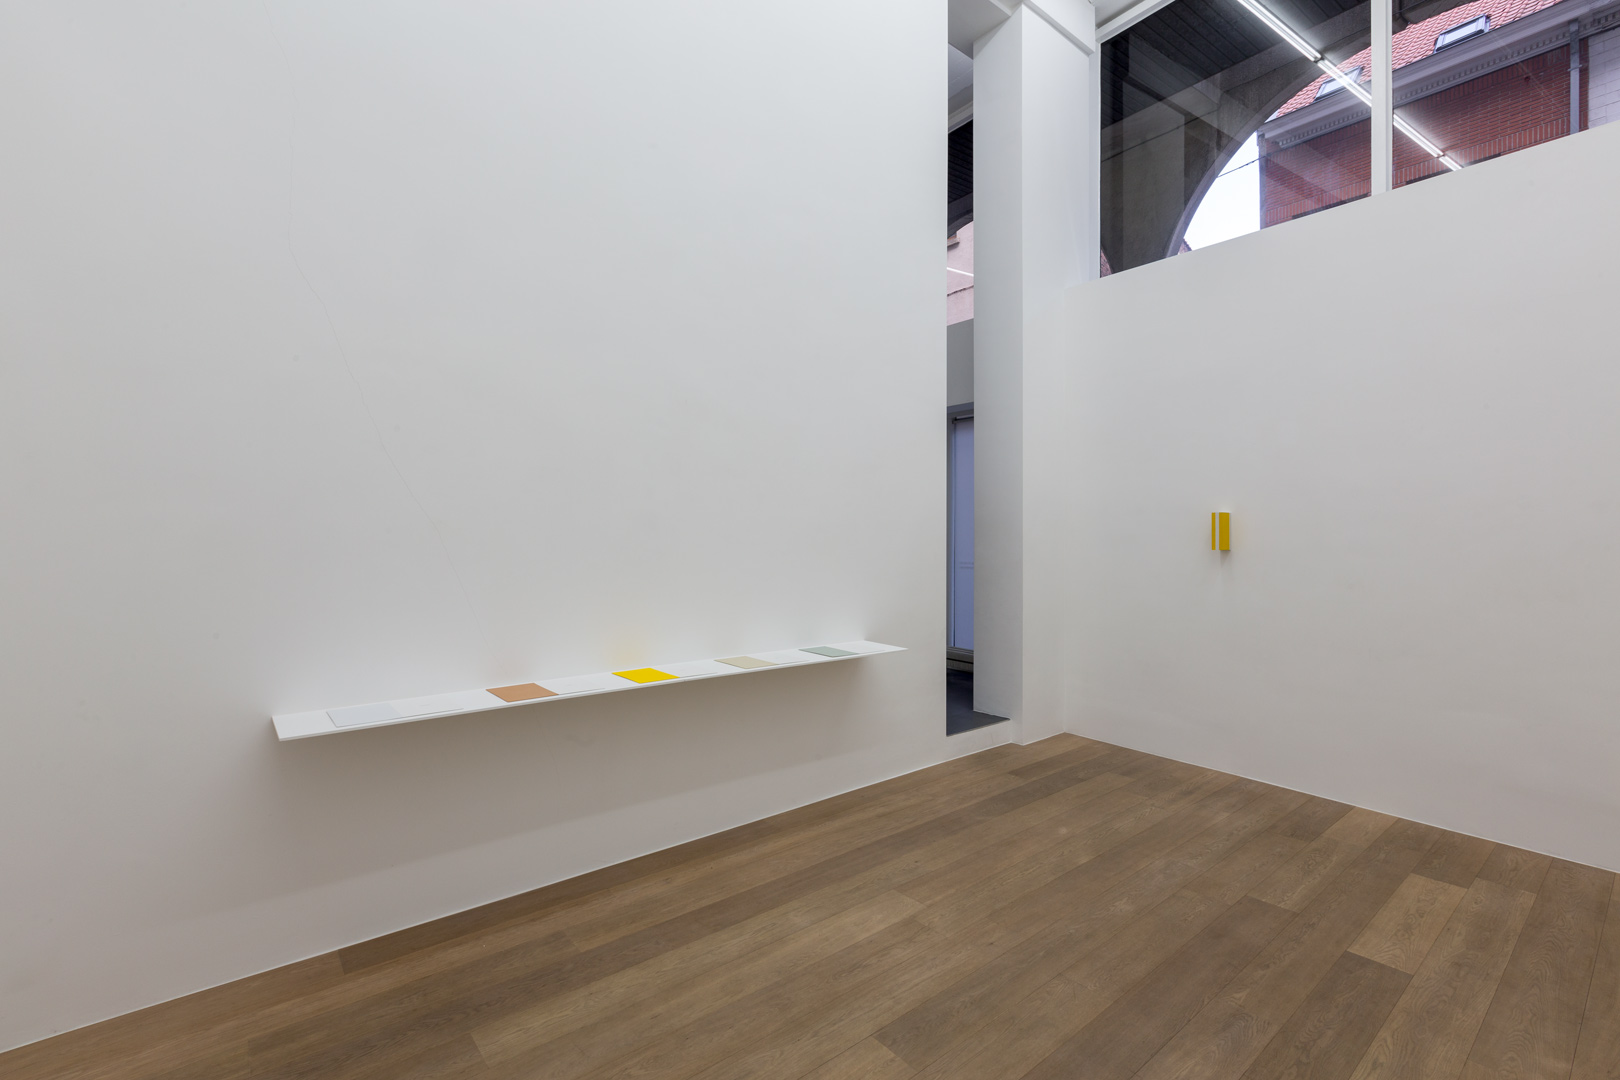 Ane Vester.  New Stories  Exhibition View-Room 2